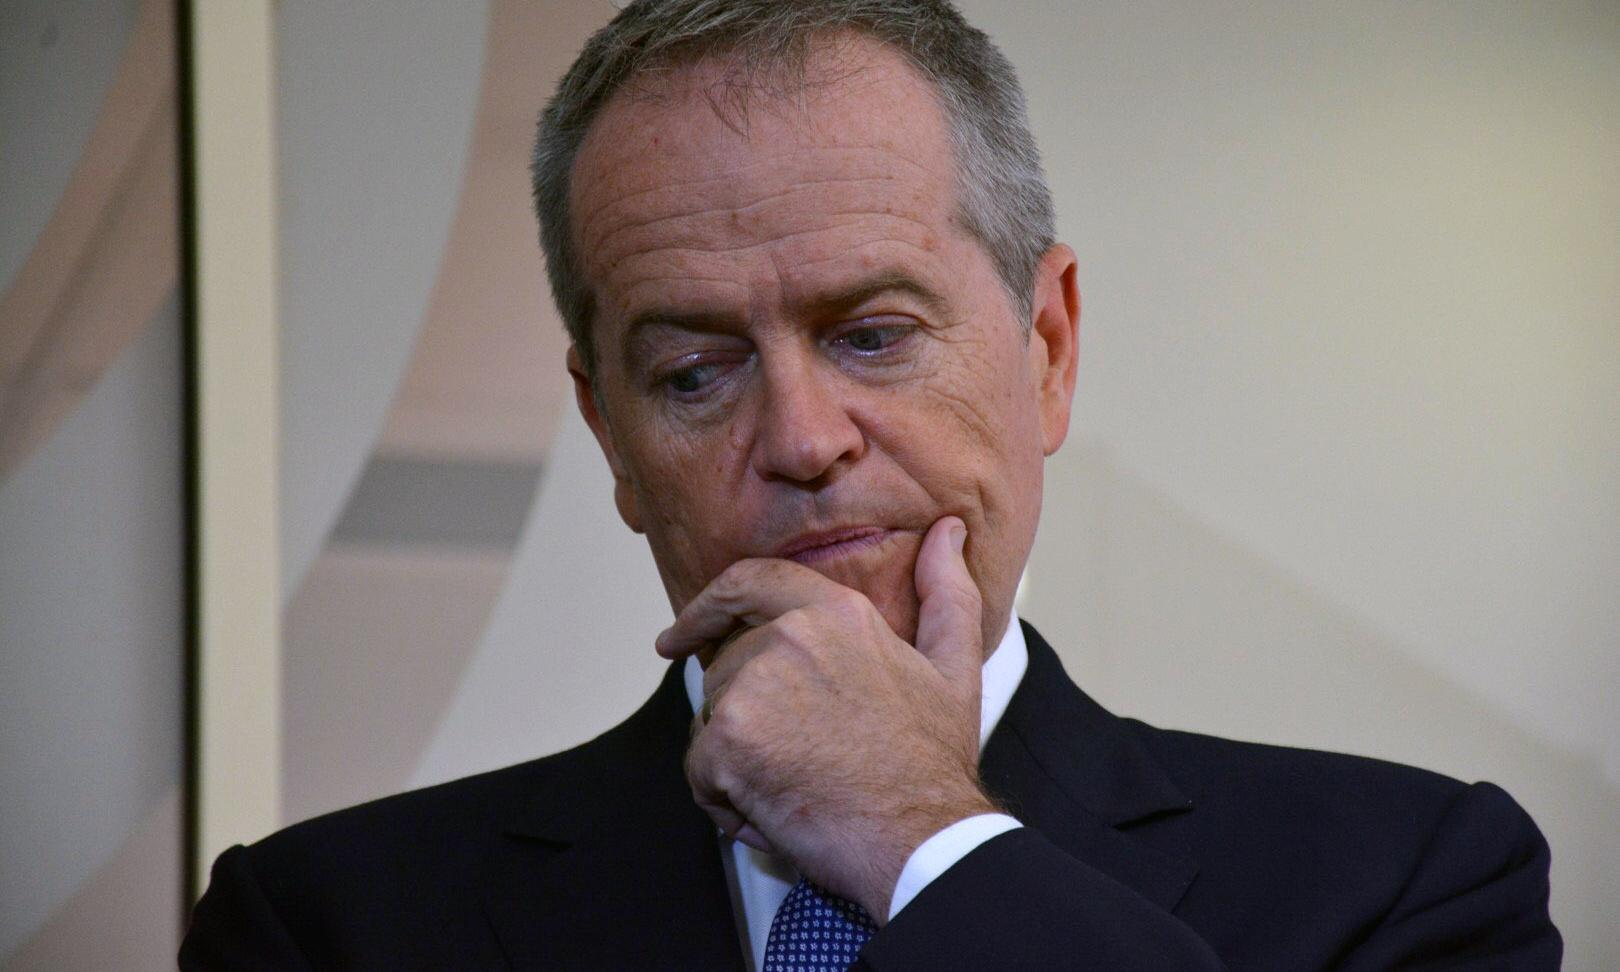 The 'dog whistling' on immigration must stop, Bill Shorten says